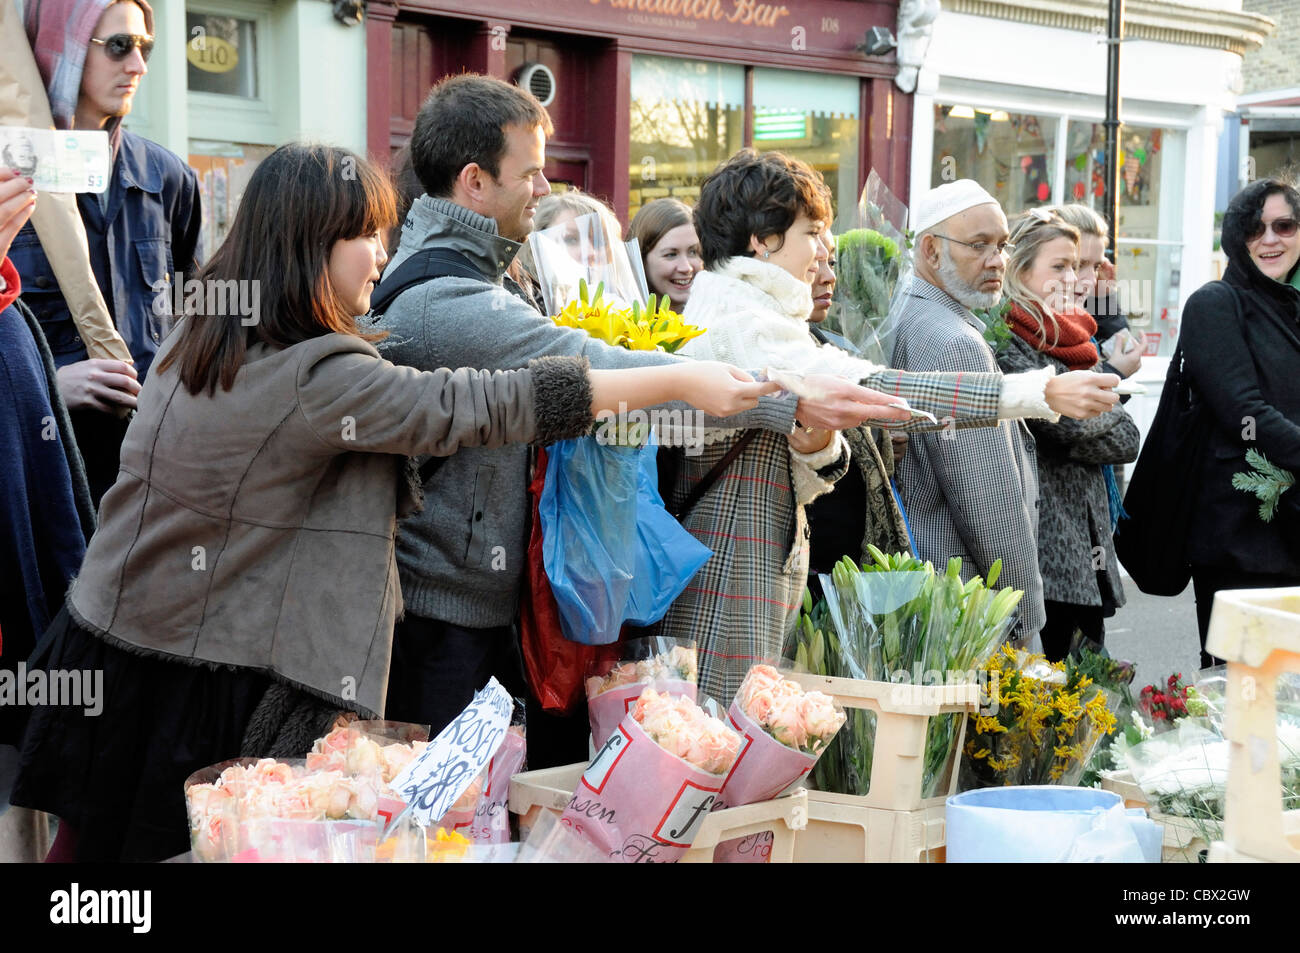 People offer money to the stallholder for cheap bunches of flowers, Columbia Road Flower Market, Tower Hamlets London - Stock Image